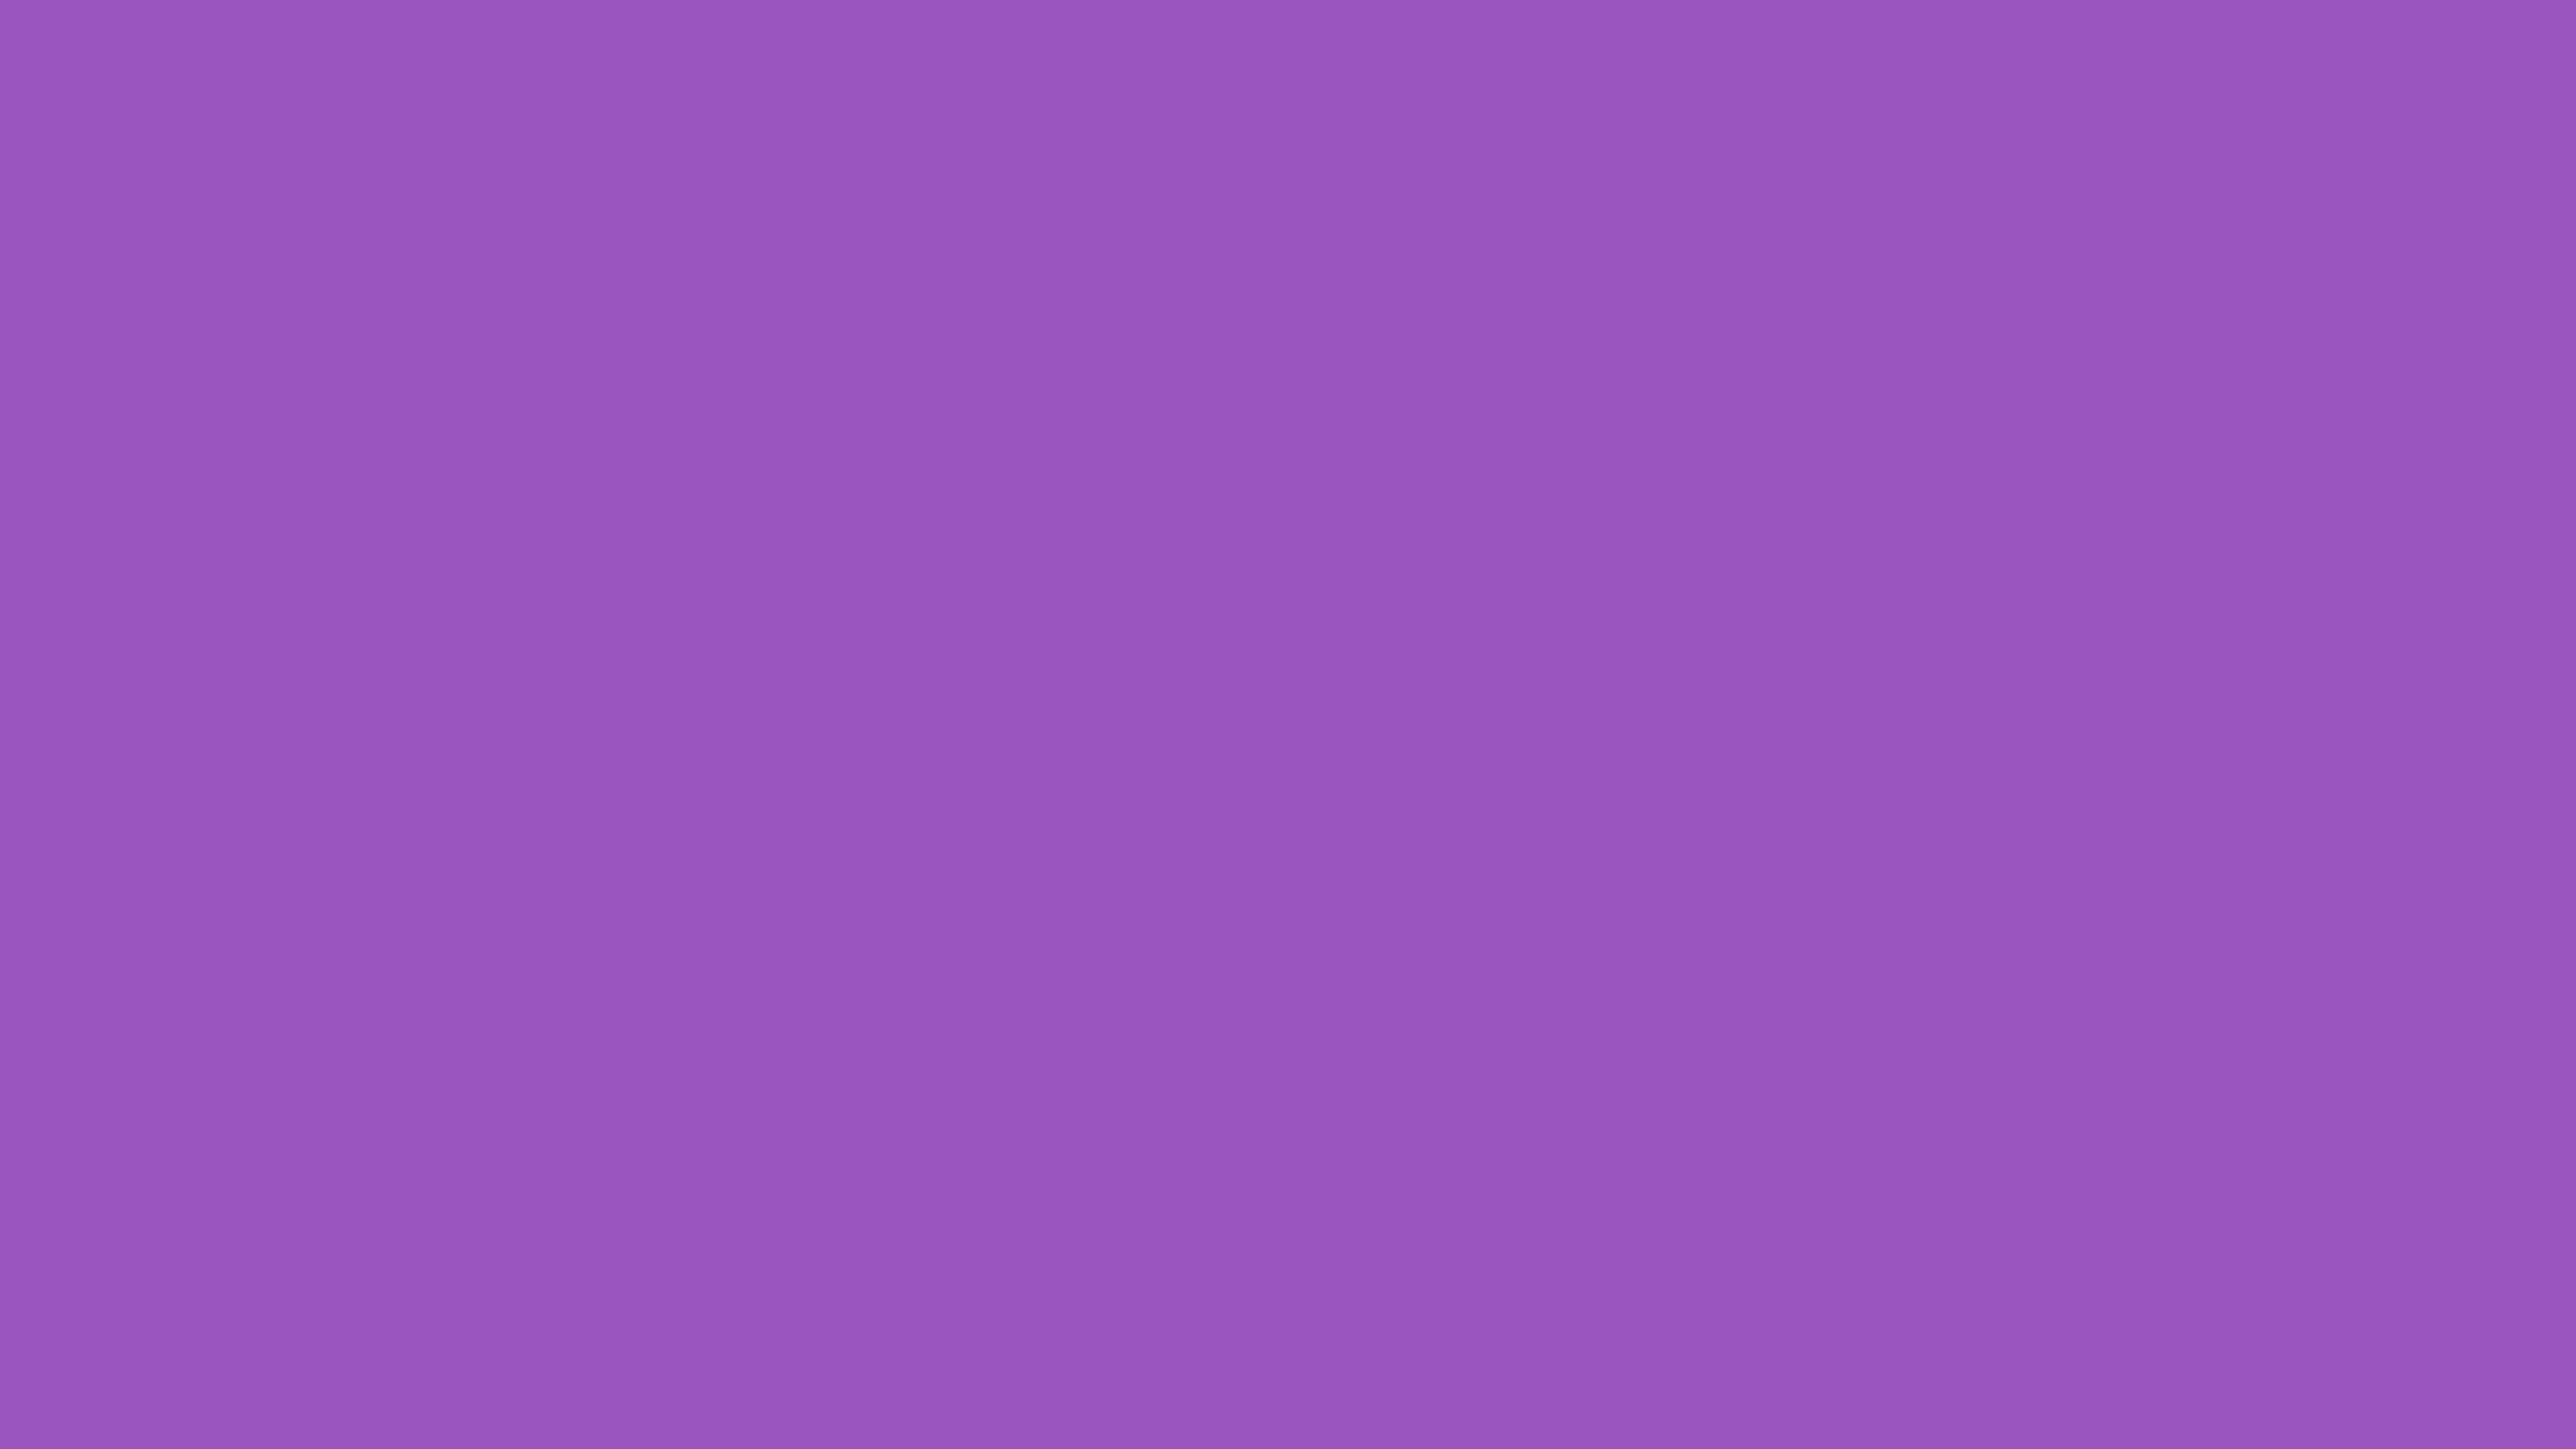 5120x2880 Deep Lilac Solid Color Background